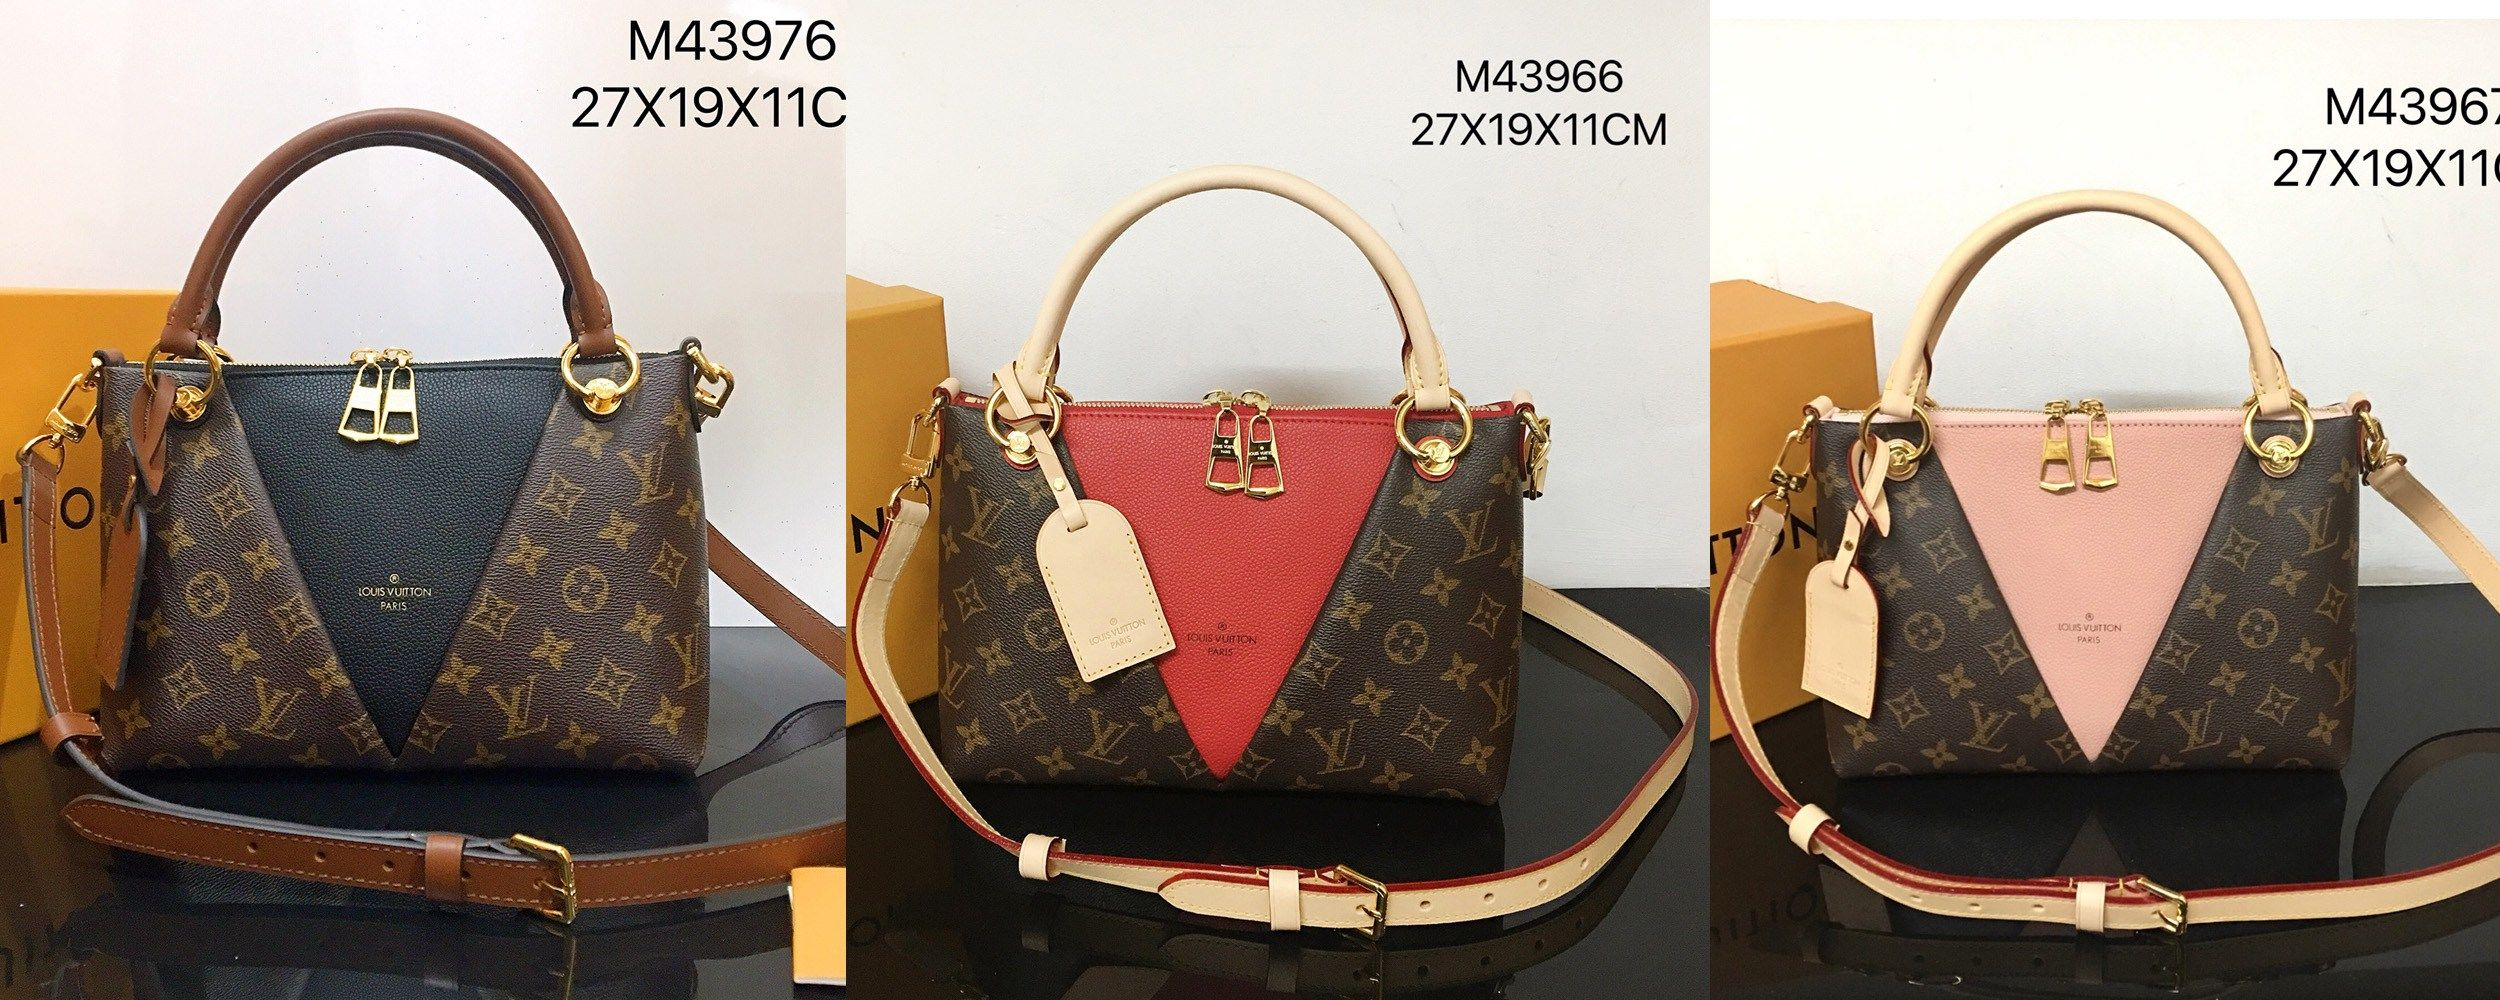 Louis Vuitton V Tote Bb Handbags